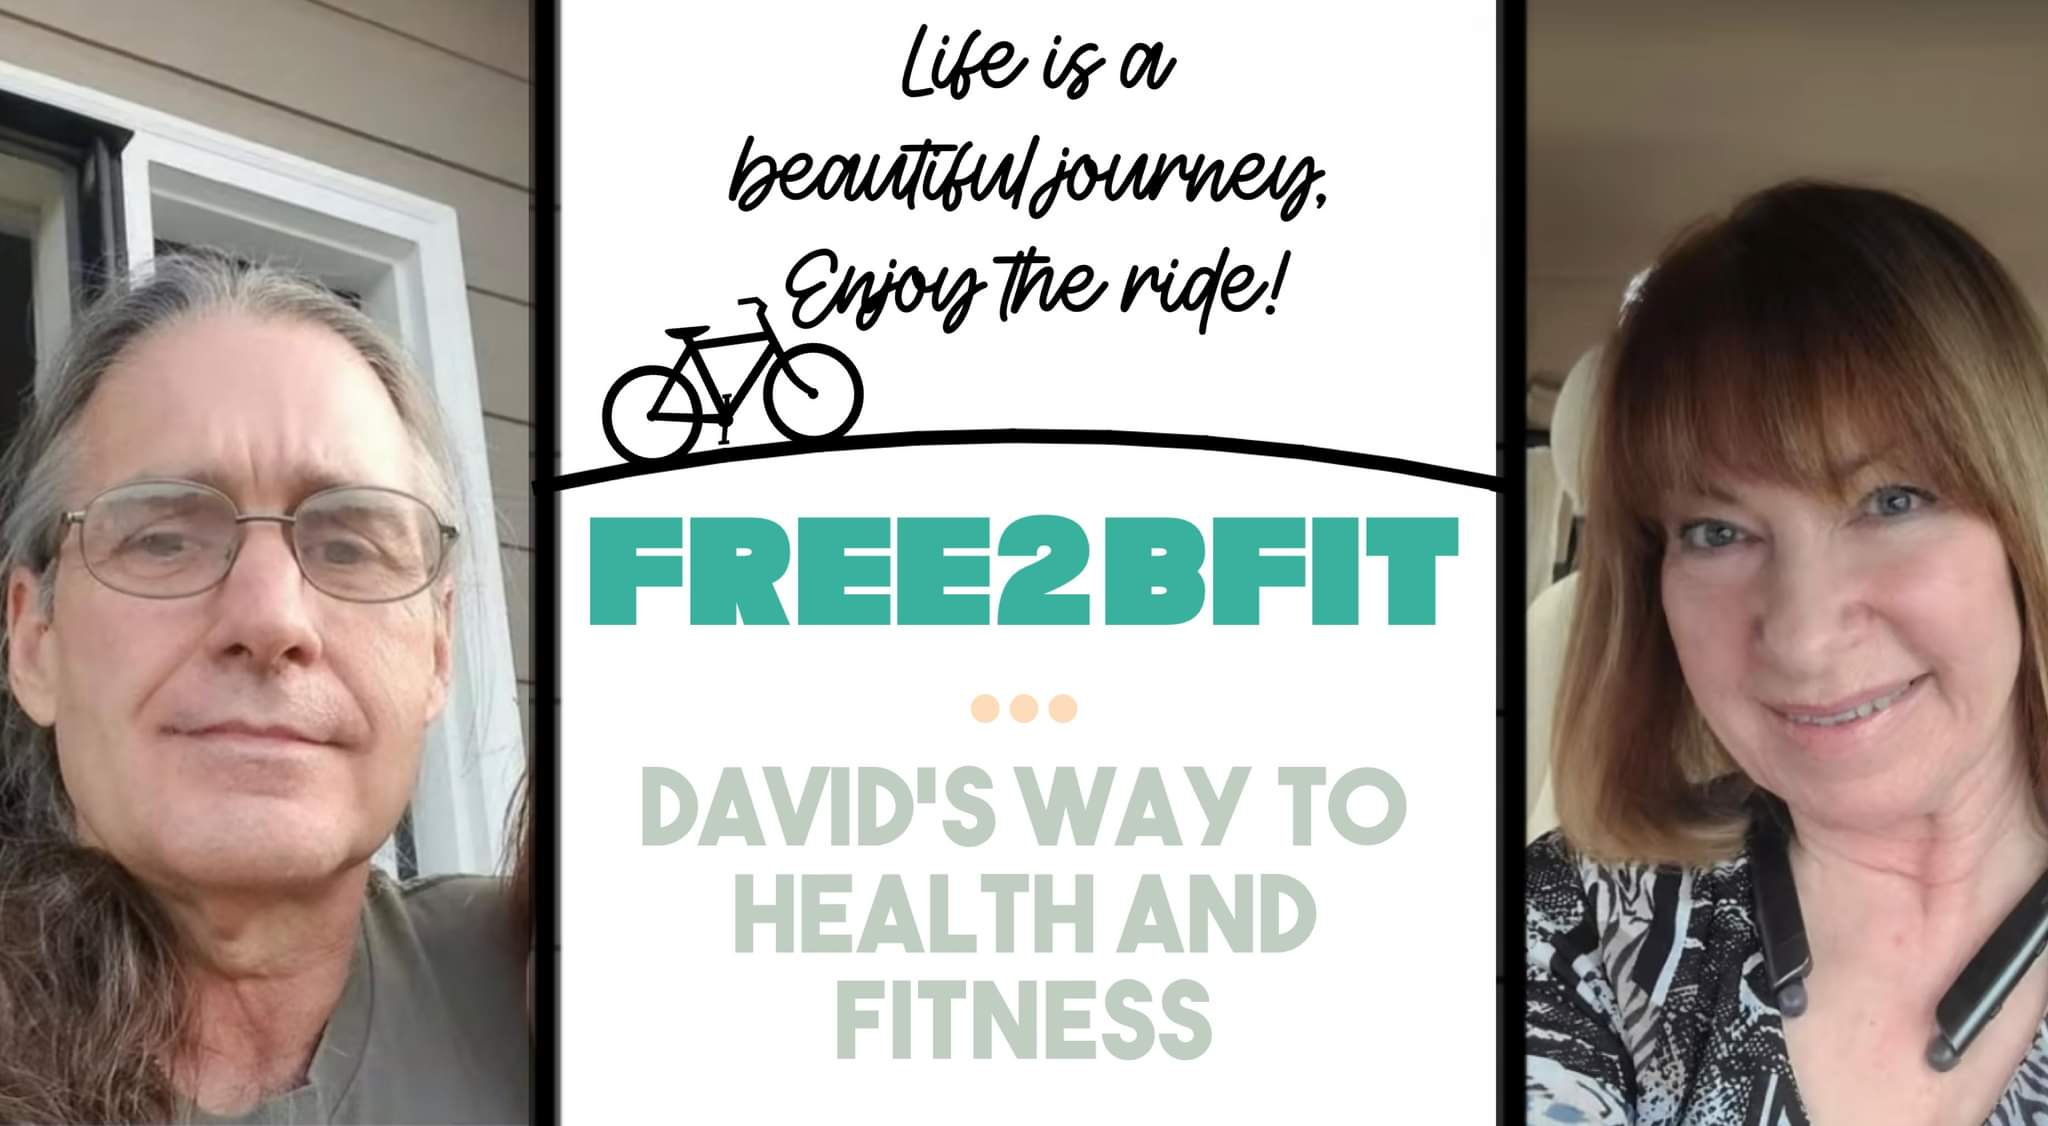 David's Way to Health and Fitness